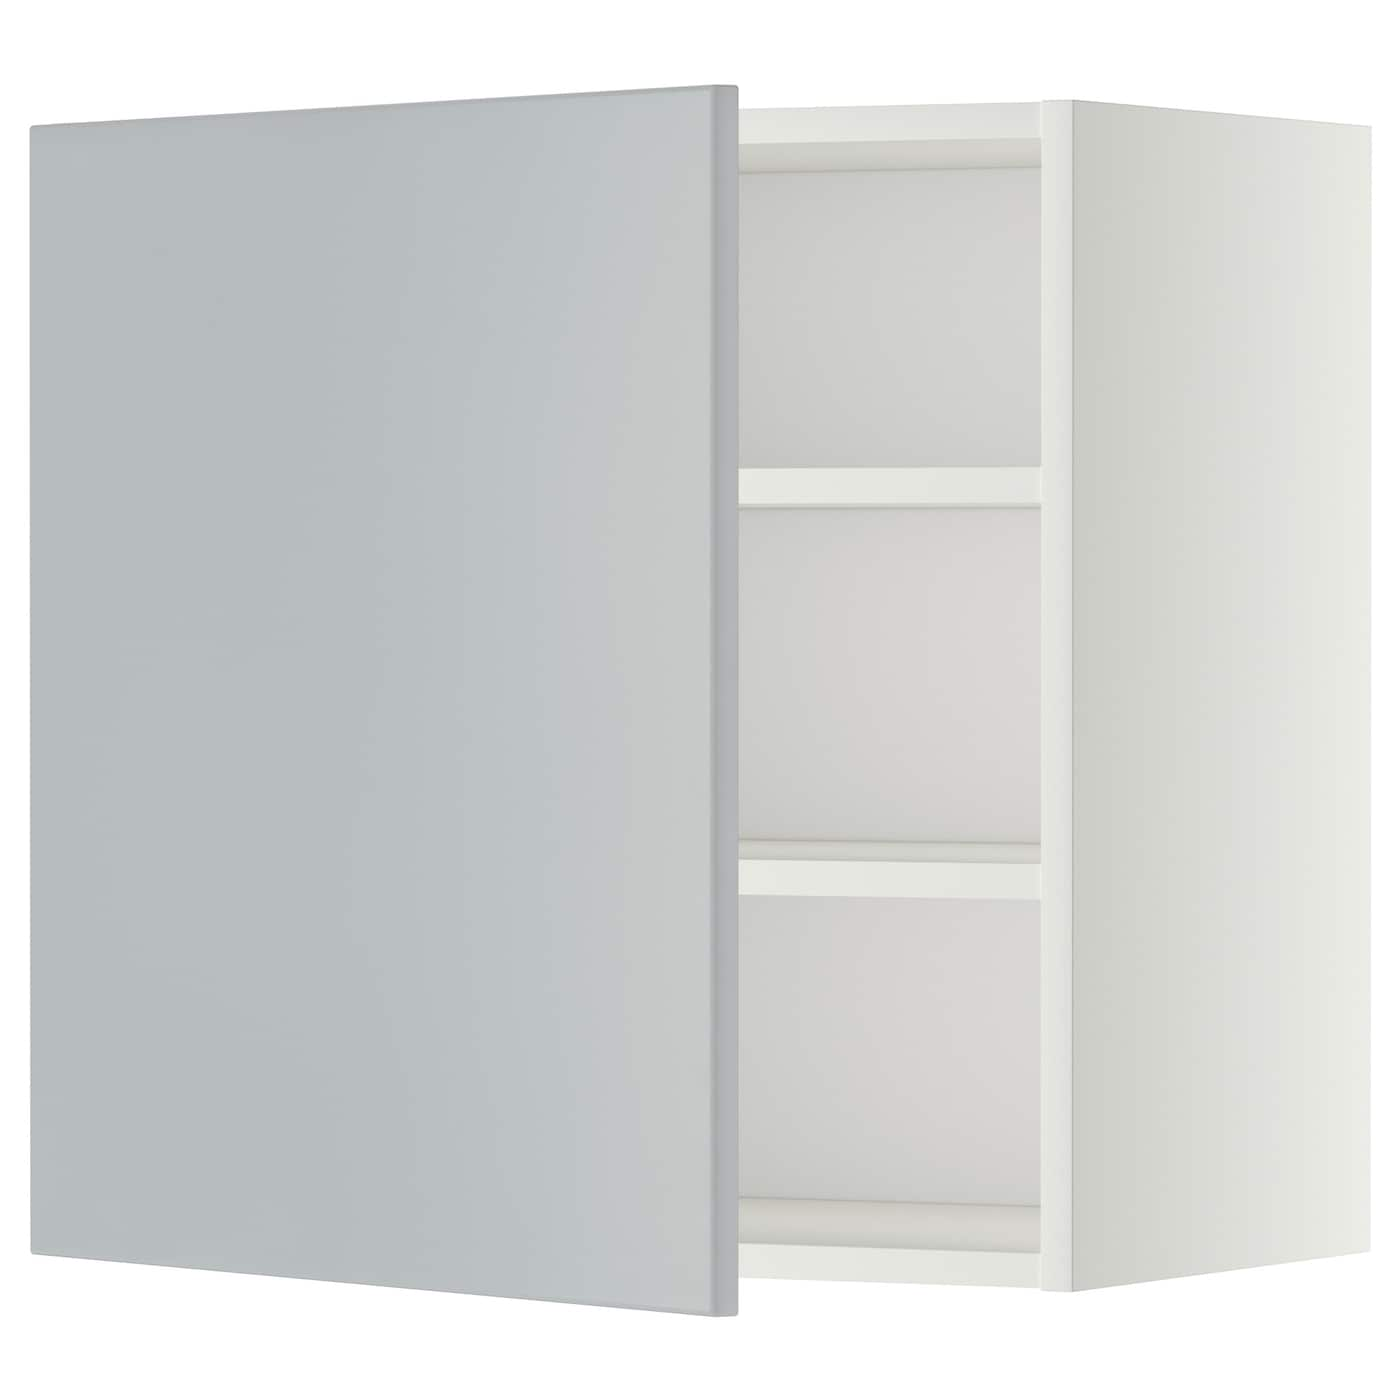 Metod Wall Cabinet With Shelves: METOD Wall Cabinet With Shelves White/veddinge Grey 60 X